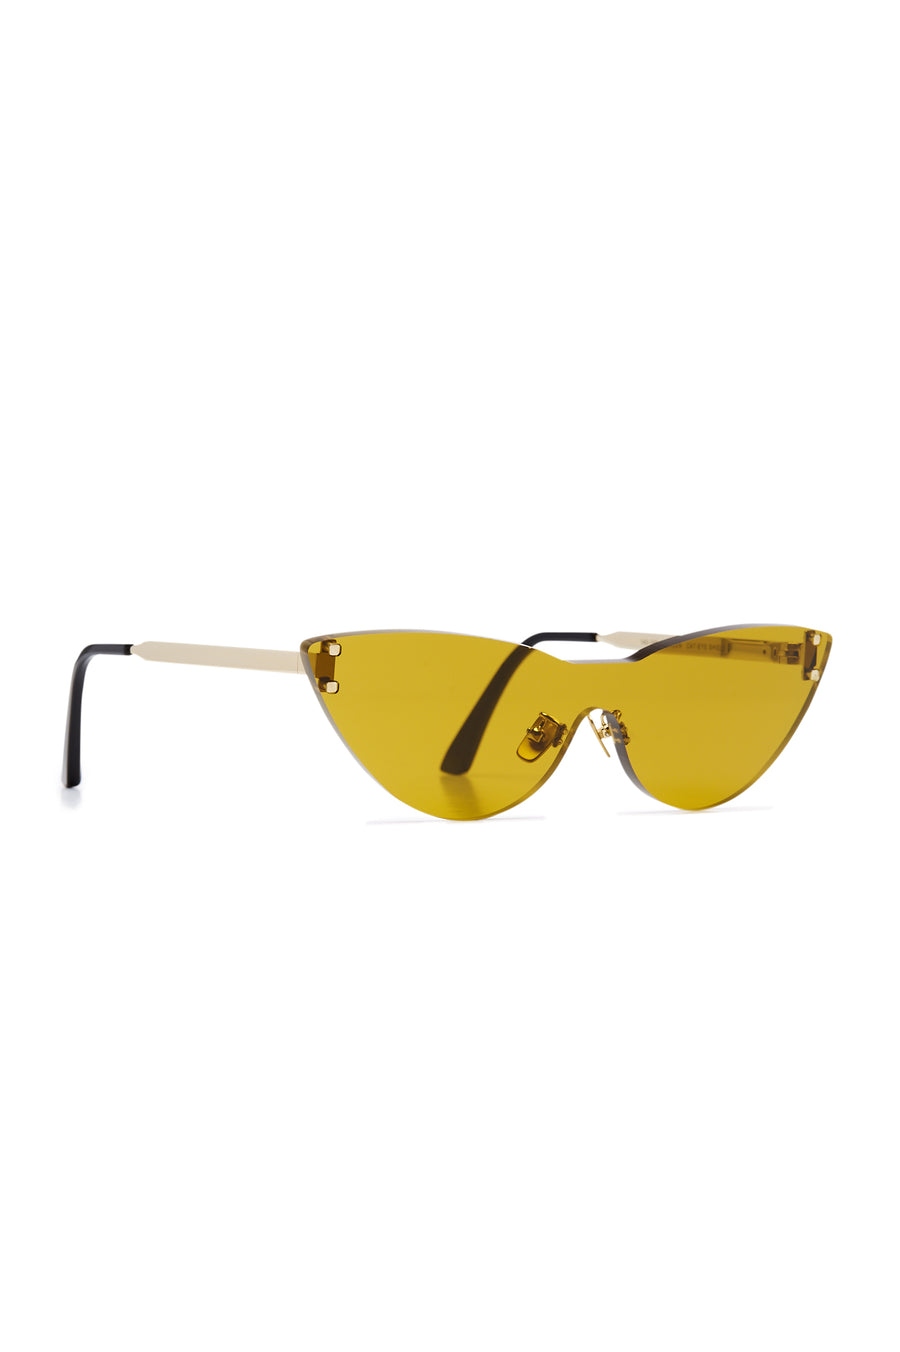 S T CAT EYE SHIELD SUNGLASSES BREEN